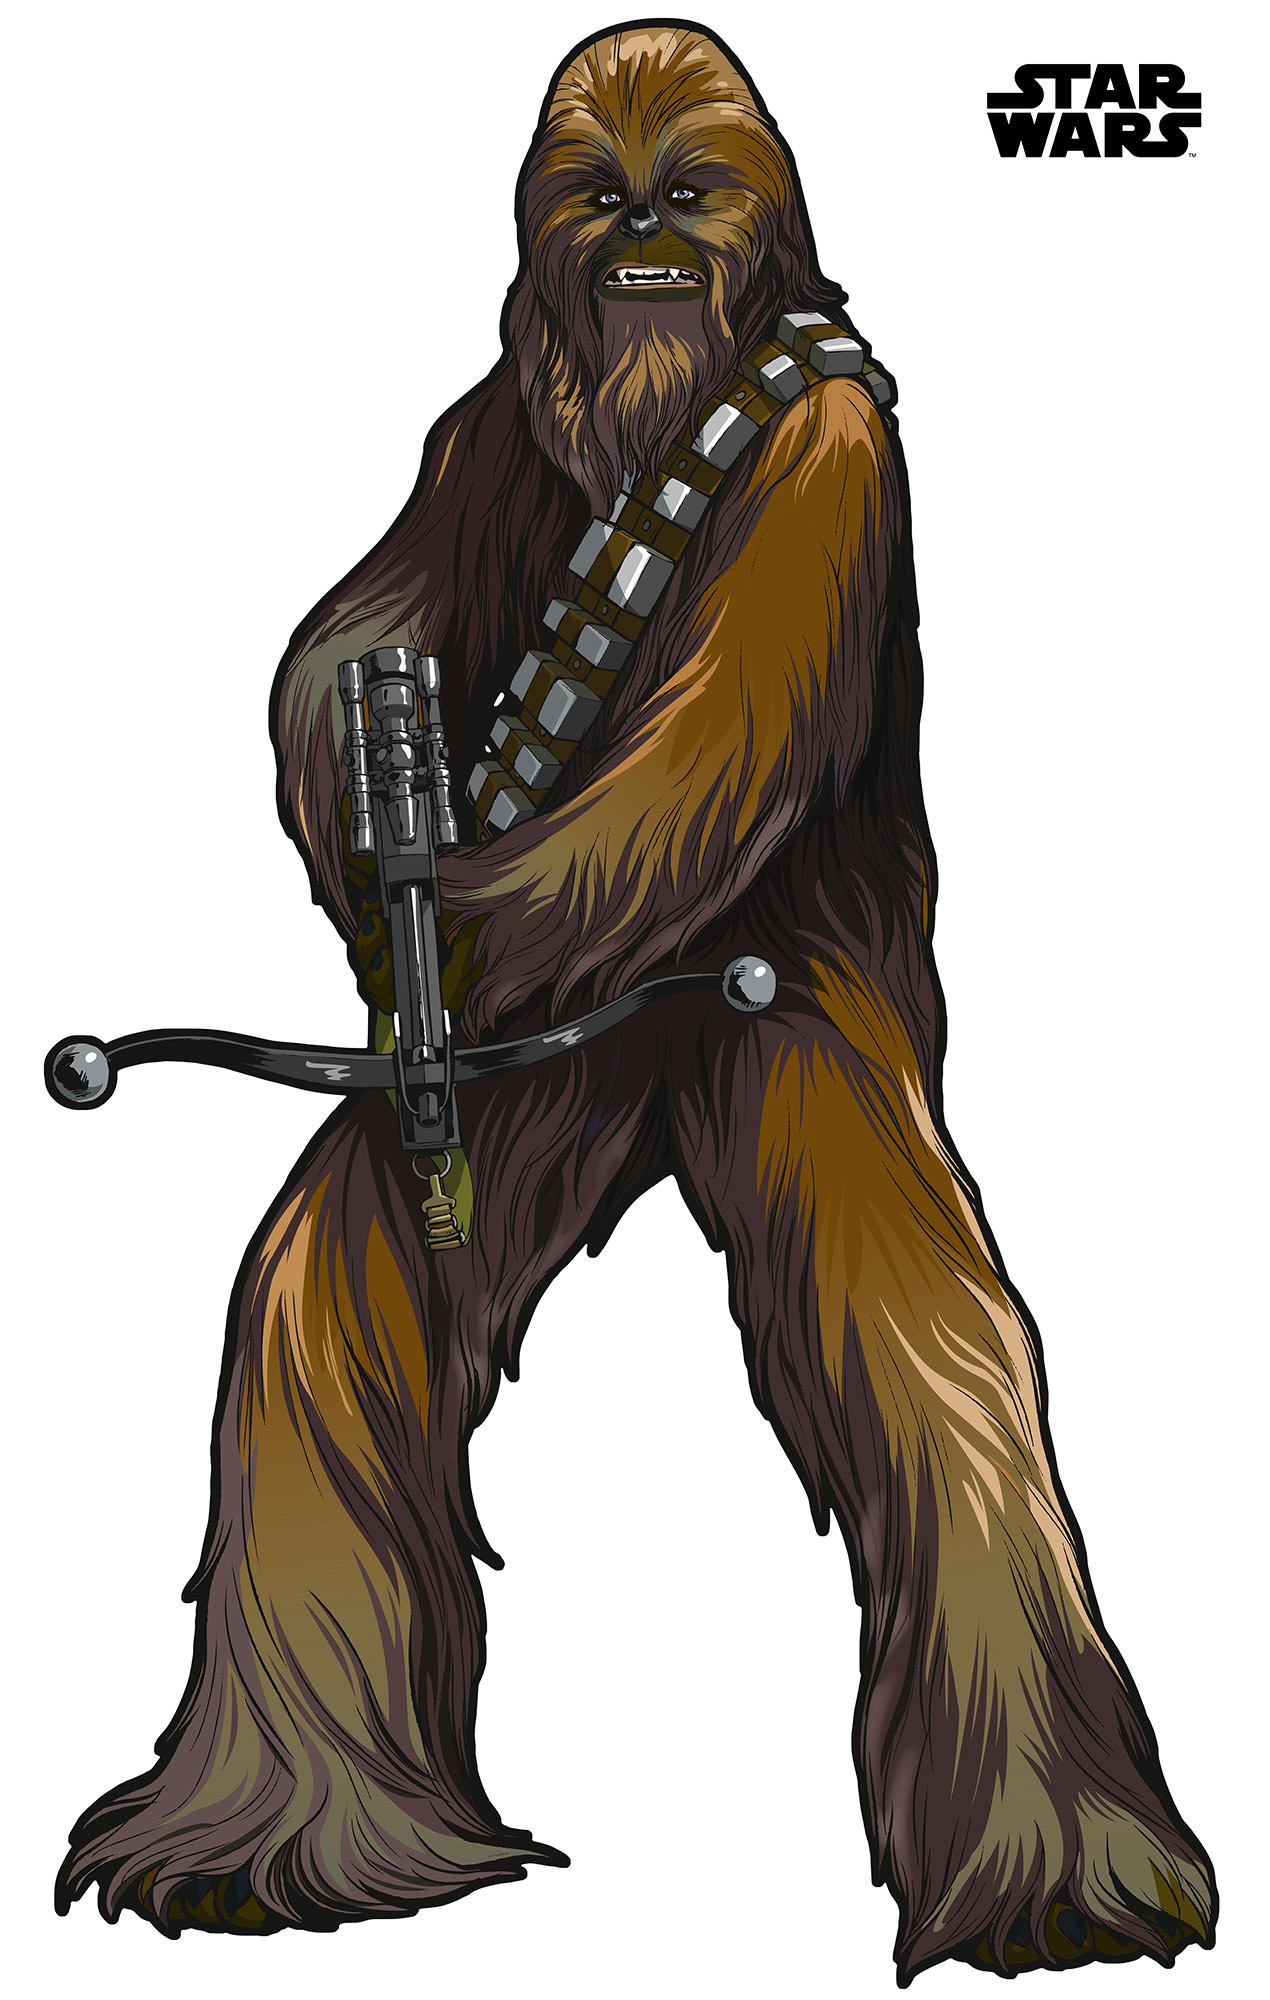 Star Wars XXL Chewbacca